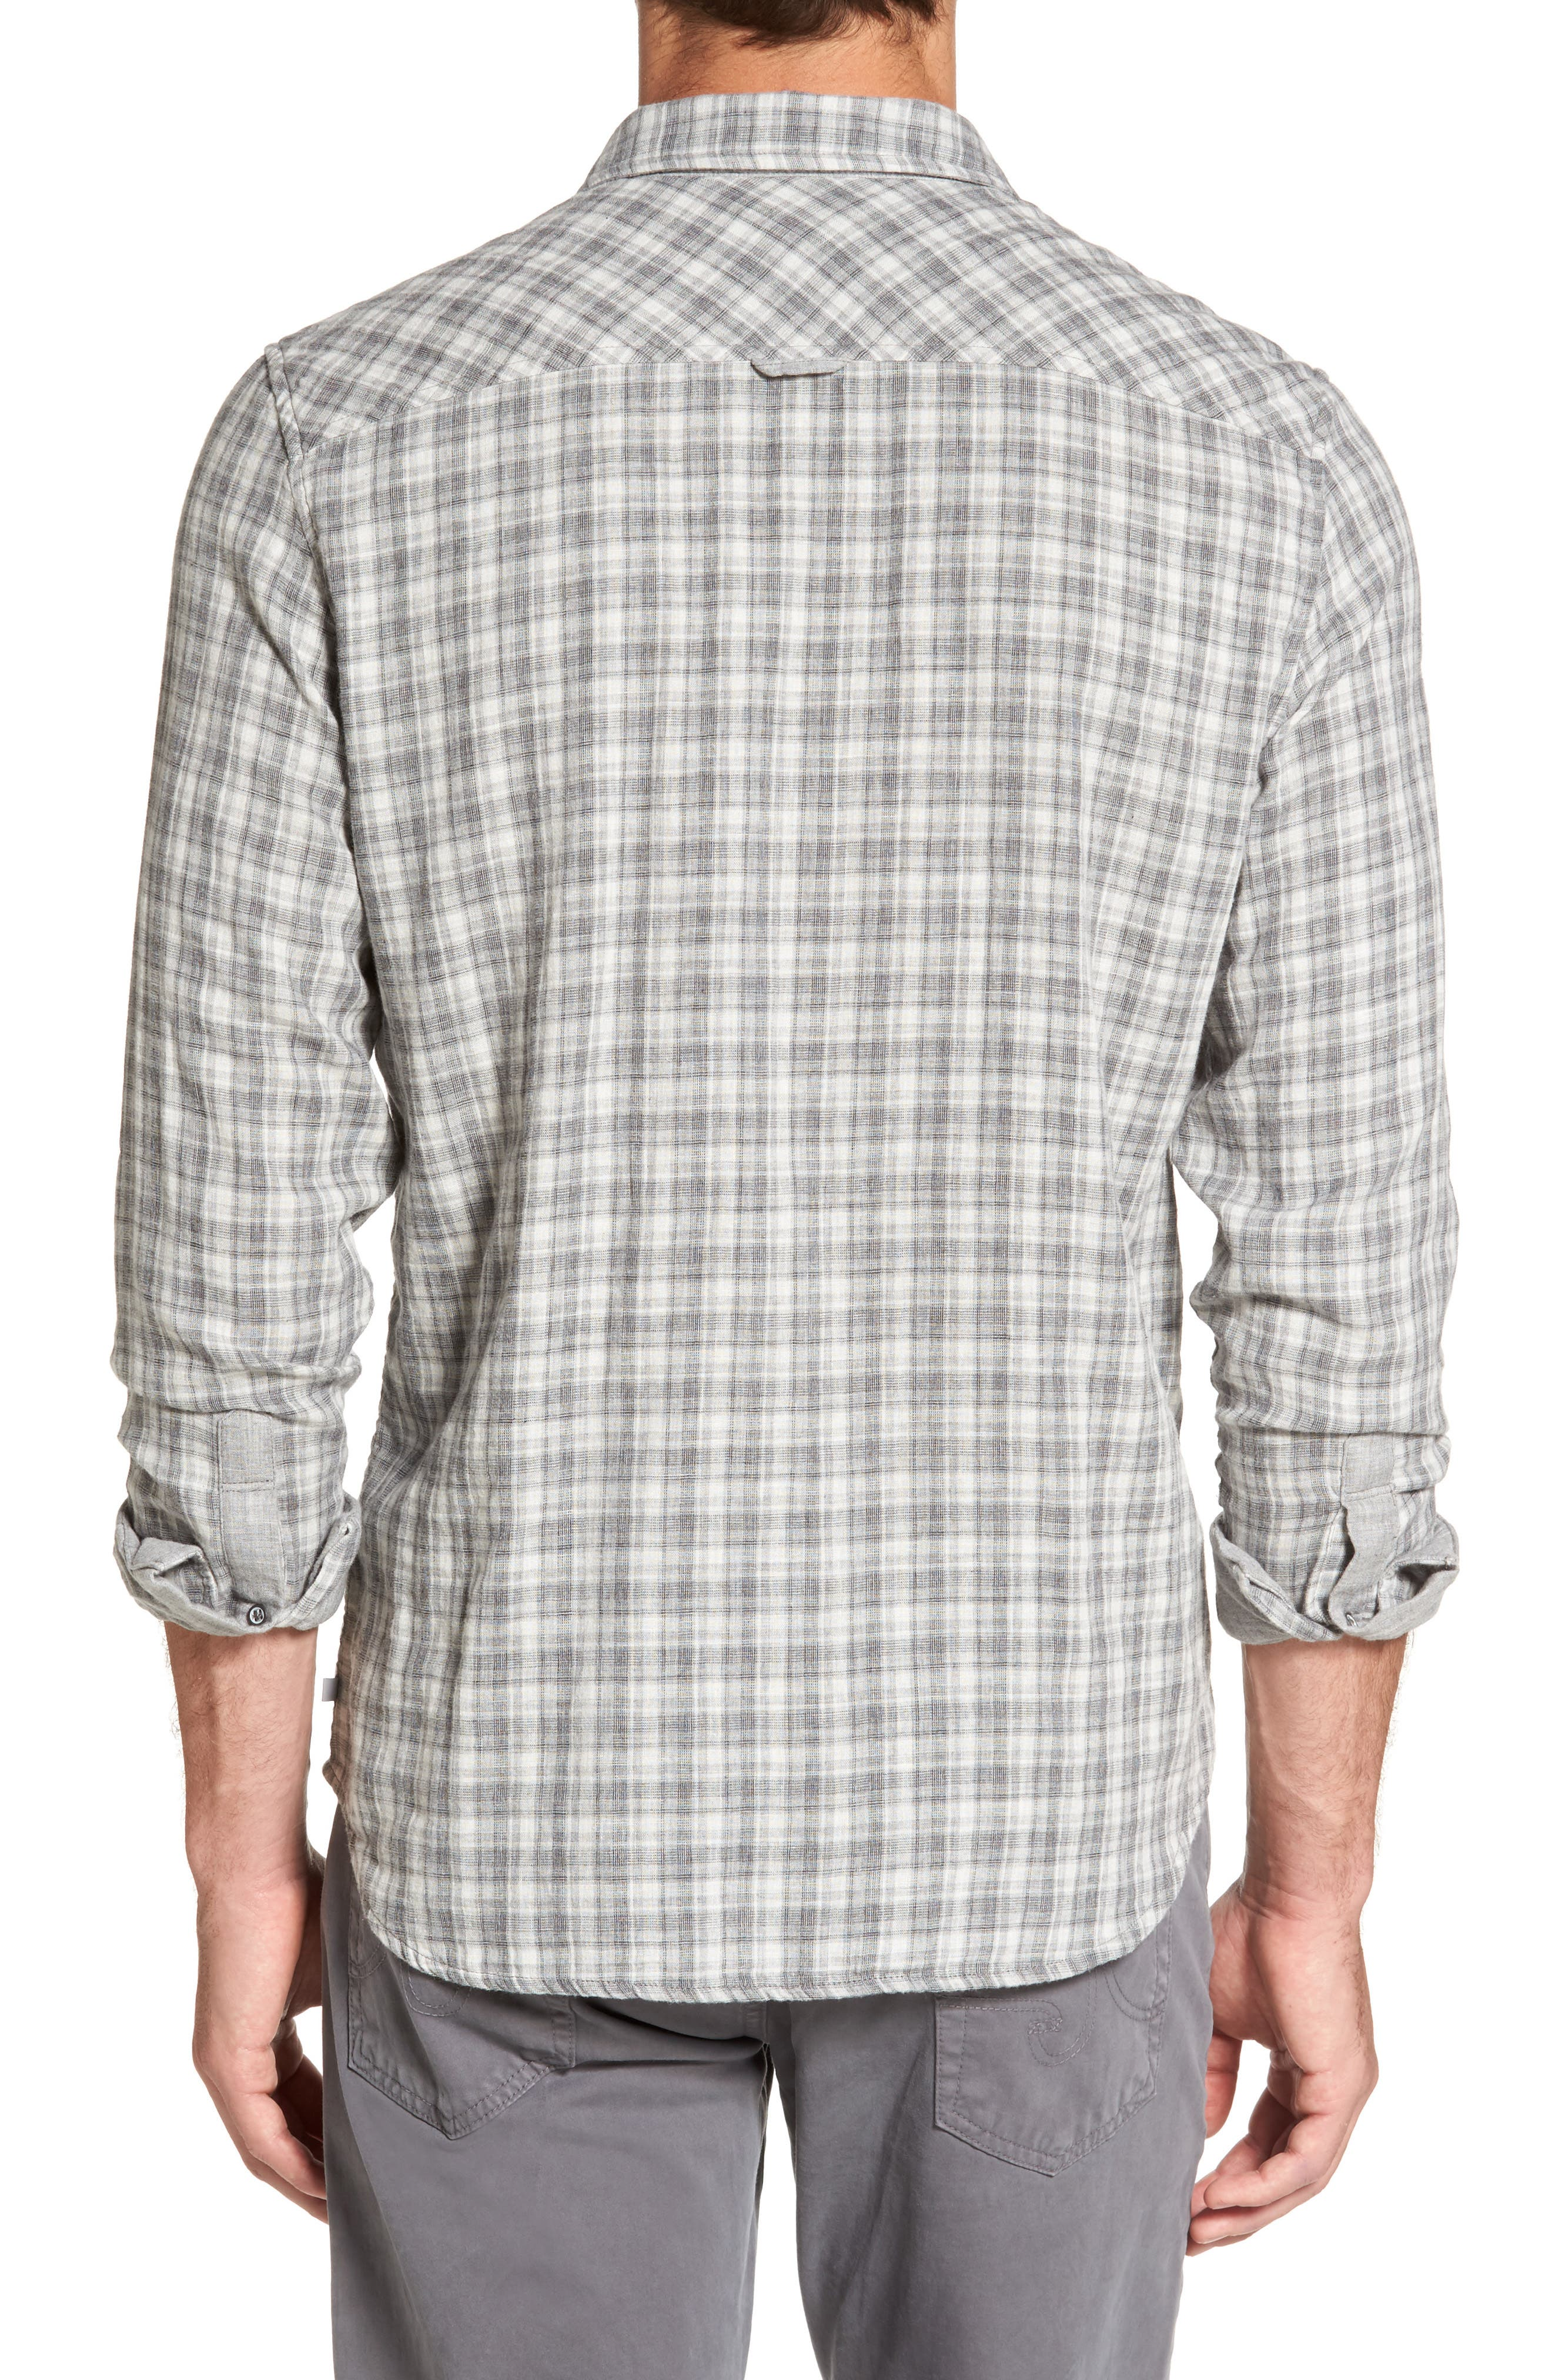 Grady Plaid Sport Shirt,                             Alternate thumbnail 2, color,                             Dlp Heather Grey/ White